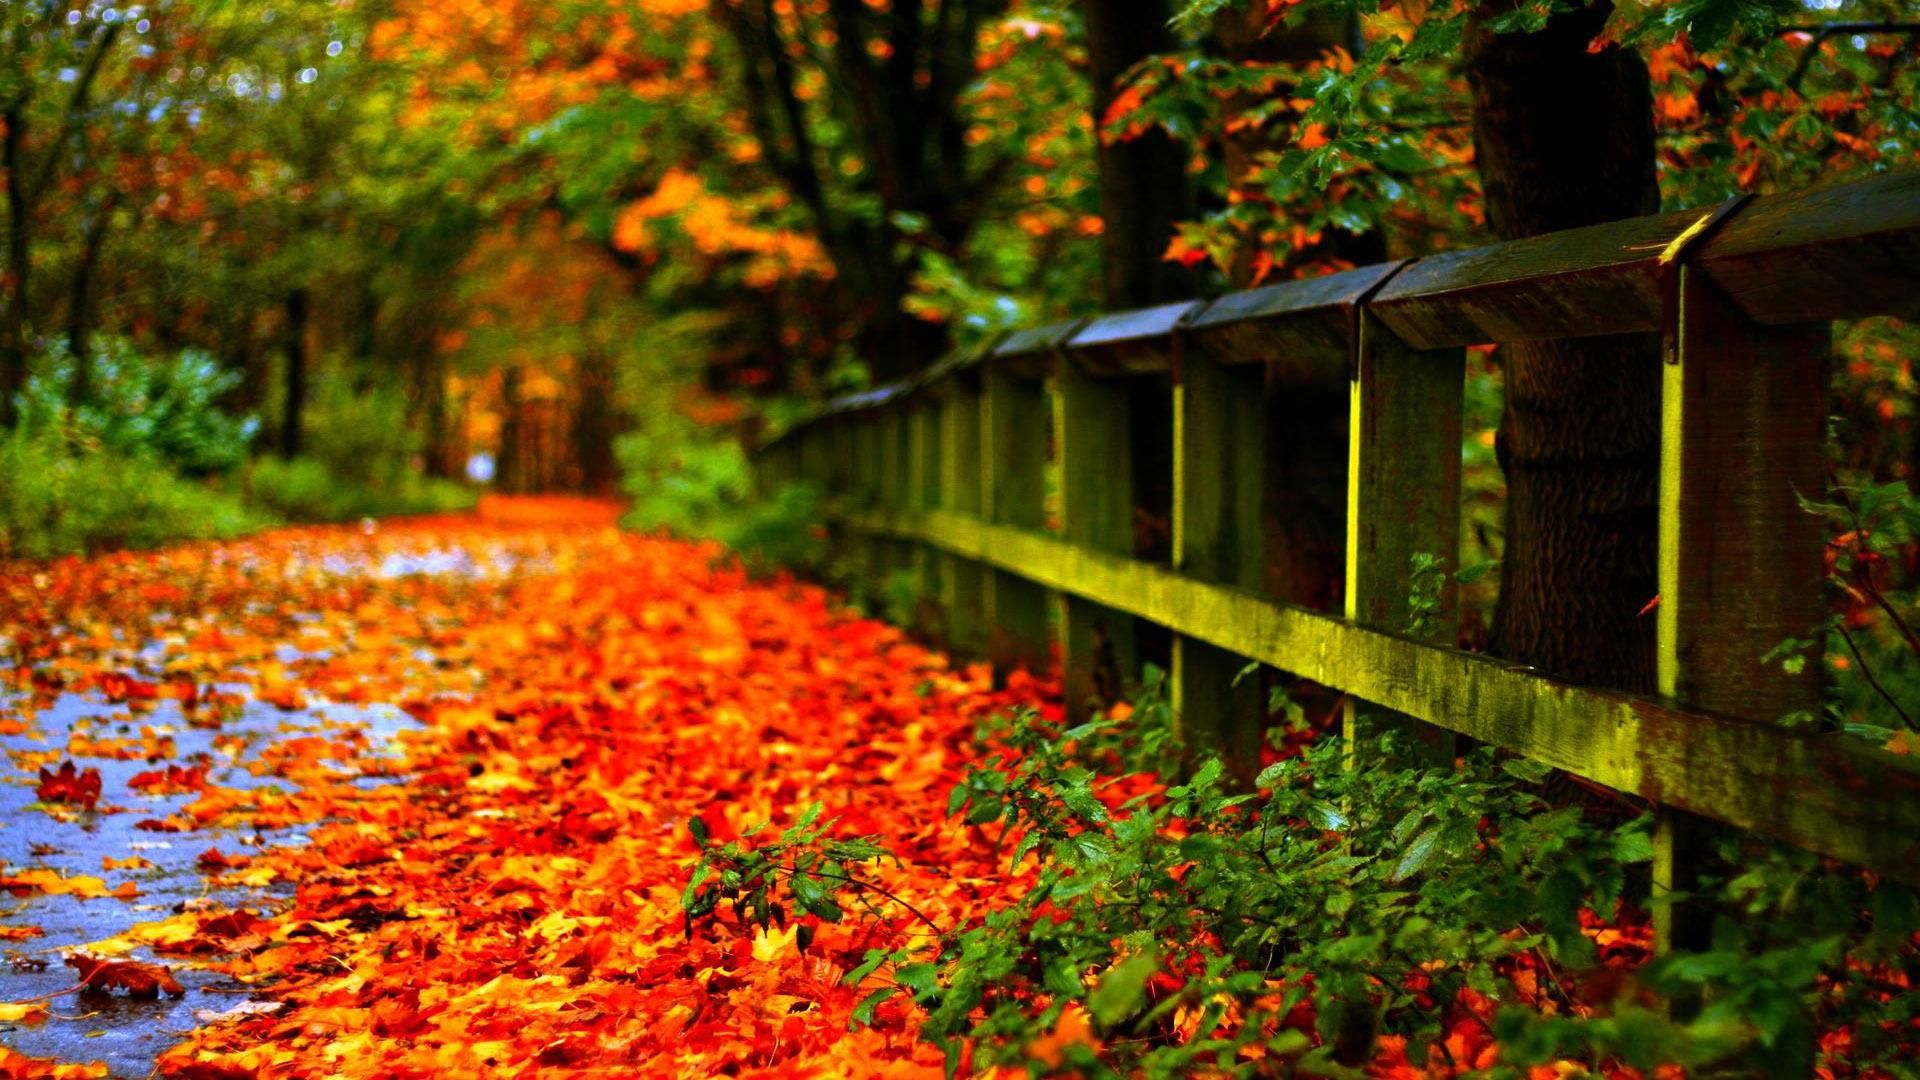 Carpet Of Autumn Leaves In The Park 1920x1080 Autumn Leaves Wallpaper Autumn Photography Fall Wallpaper